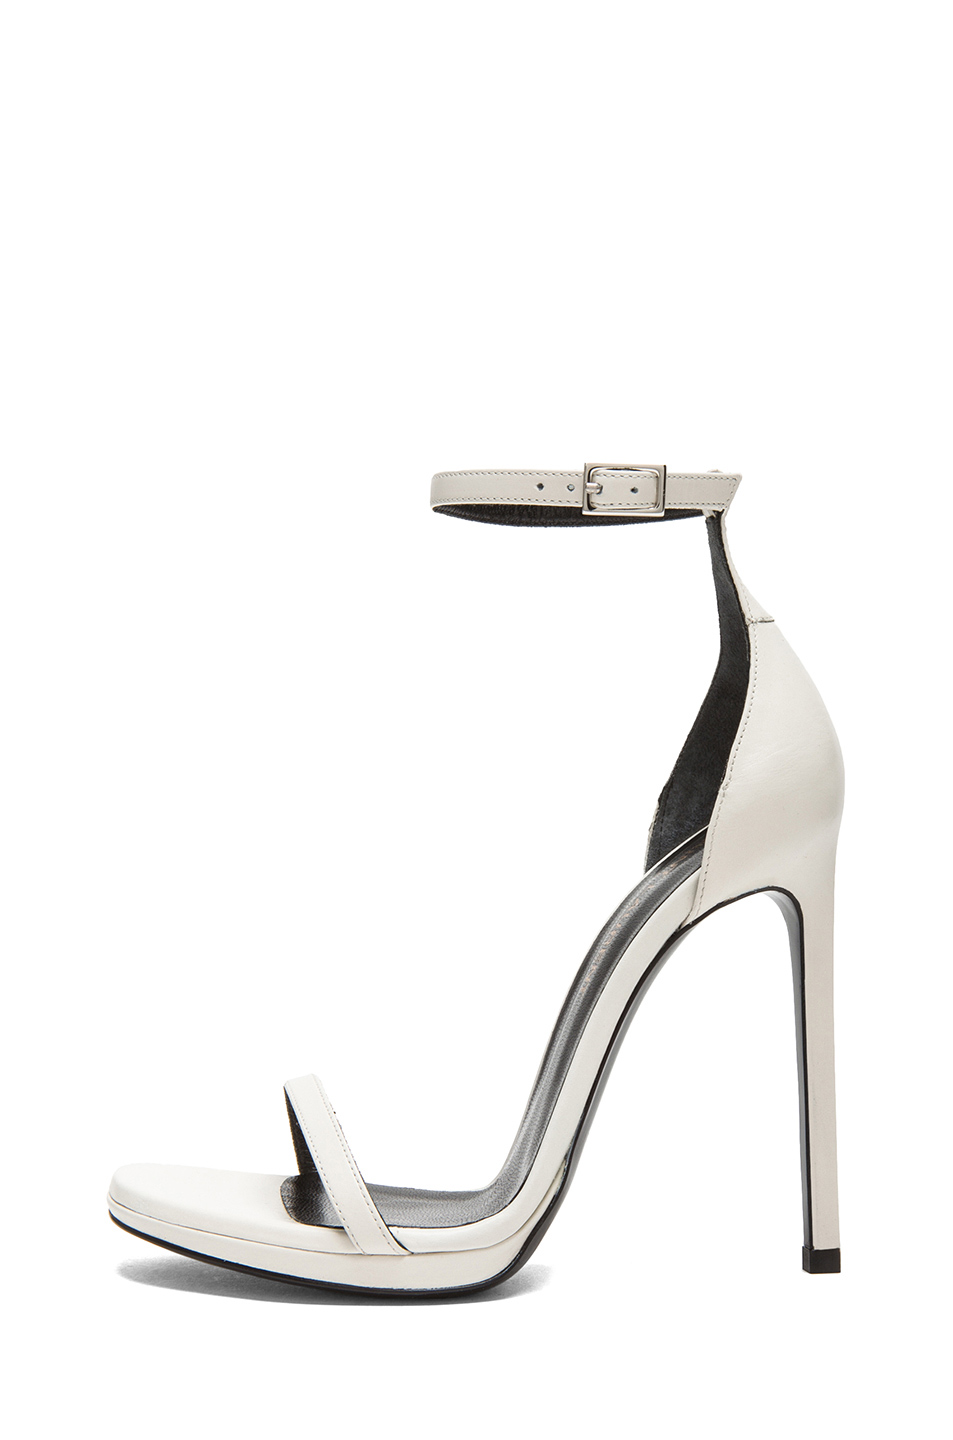 Saint Laurent | Jane Leather Ankle Strap Sandals in White